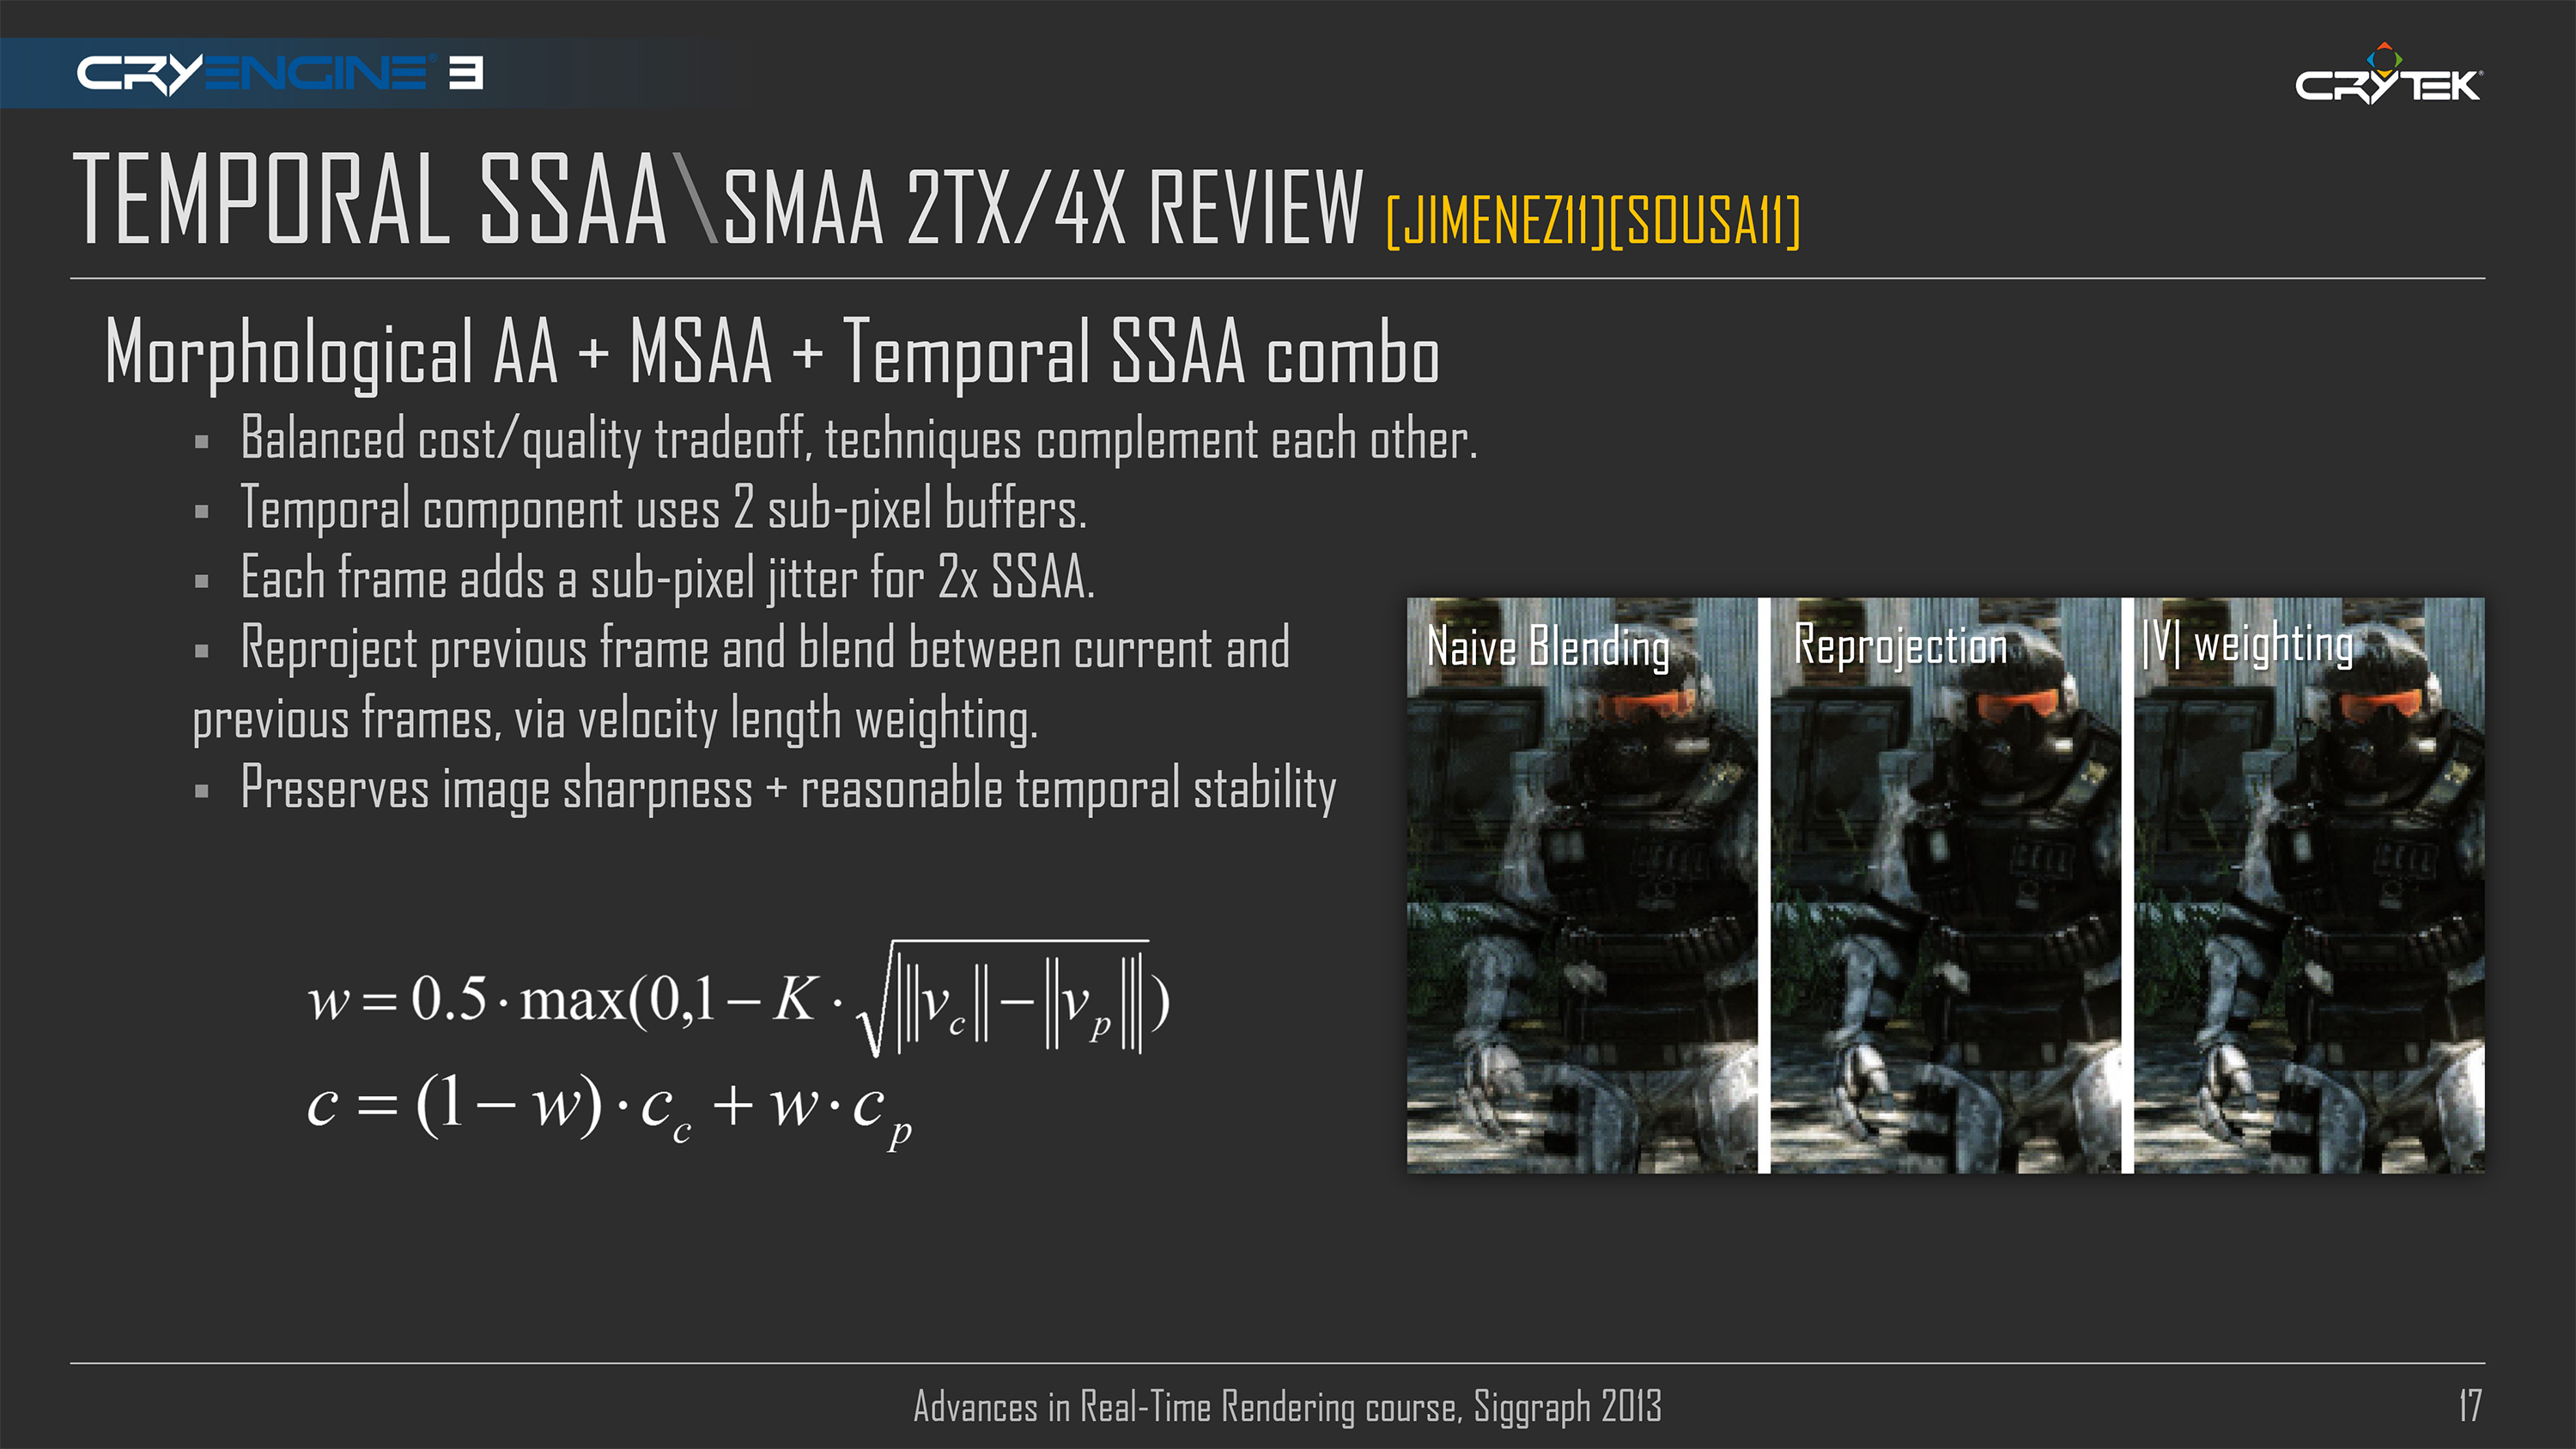 Better AA: Dynamic Super Resolution & Multi-Frame Sampled Anti-Aliasing - The NVIDIA GeForce GTX 980 Review: Maxwell Mark 2